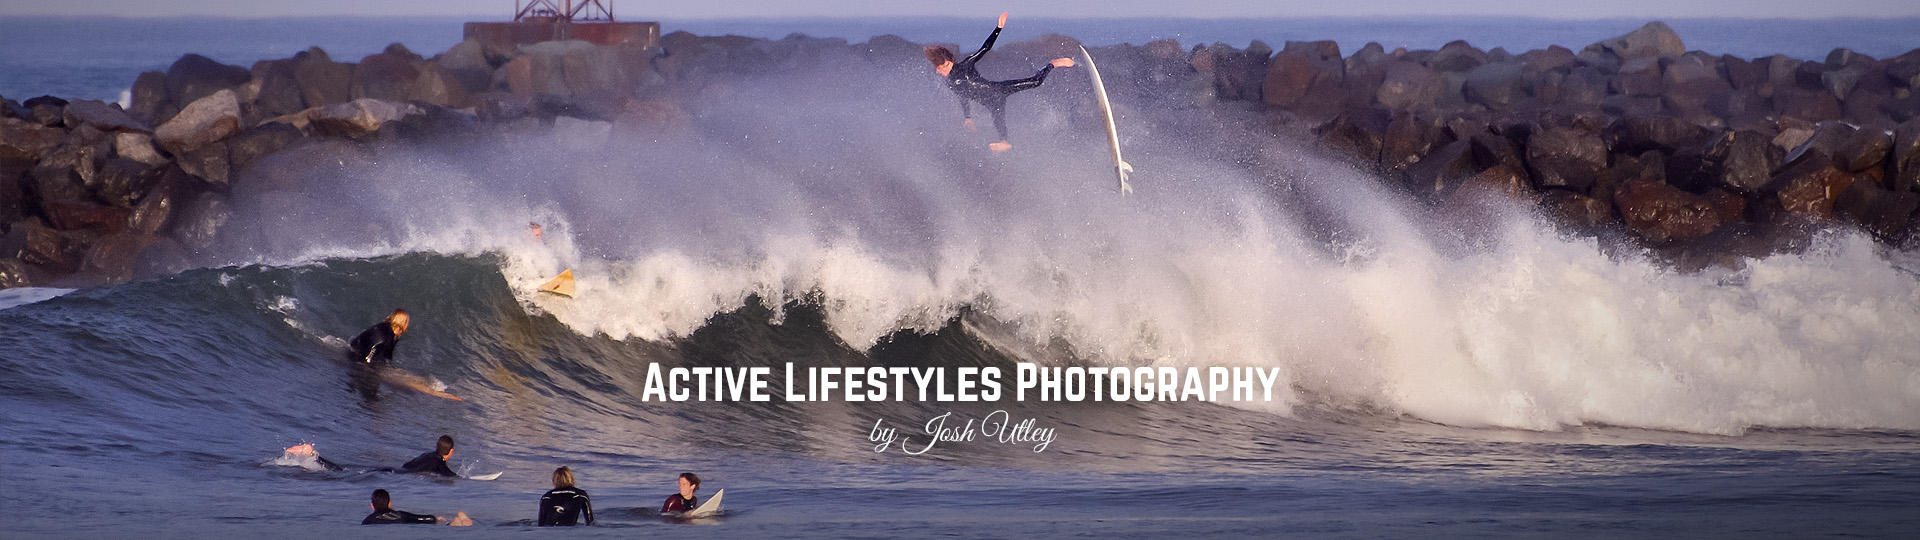 Active Lifestyle Photography by Josh Utley